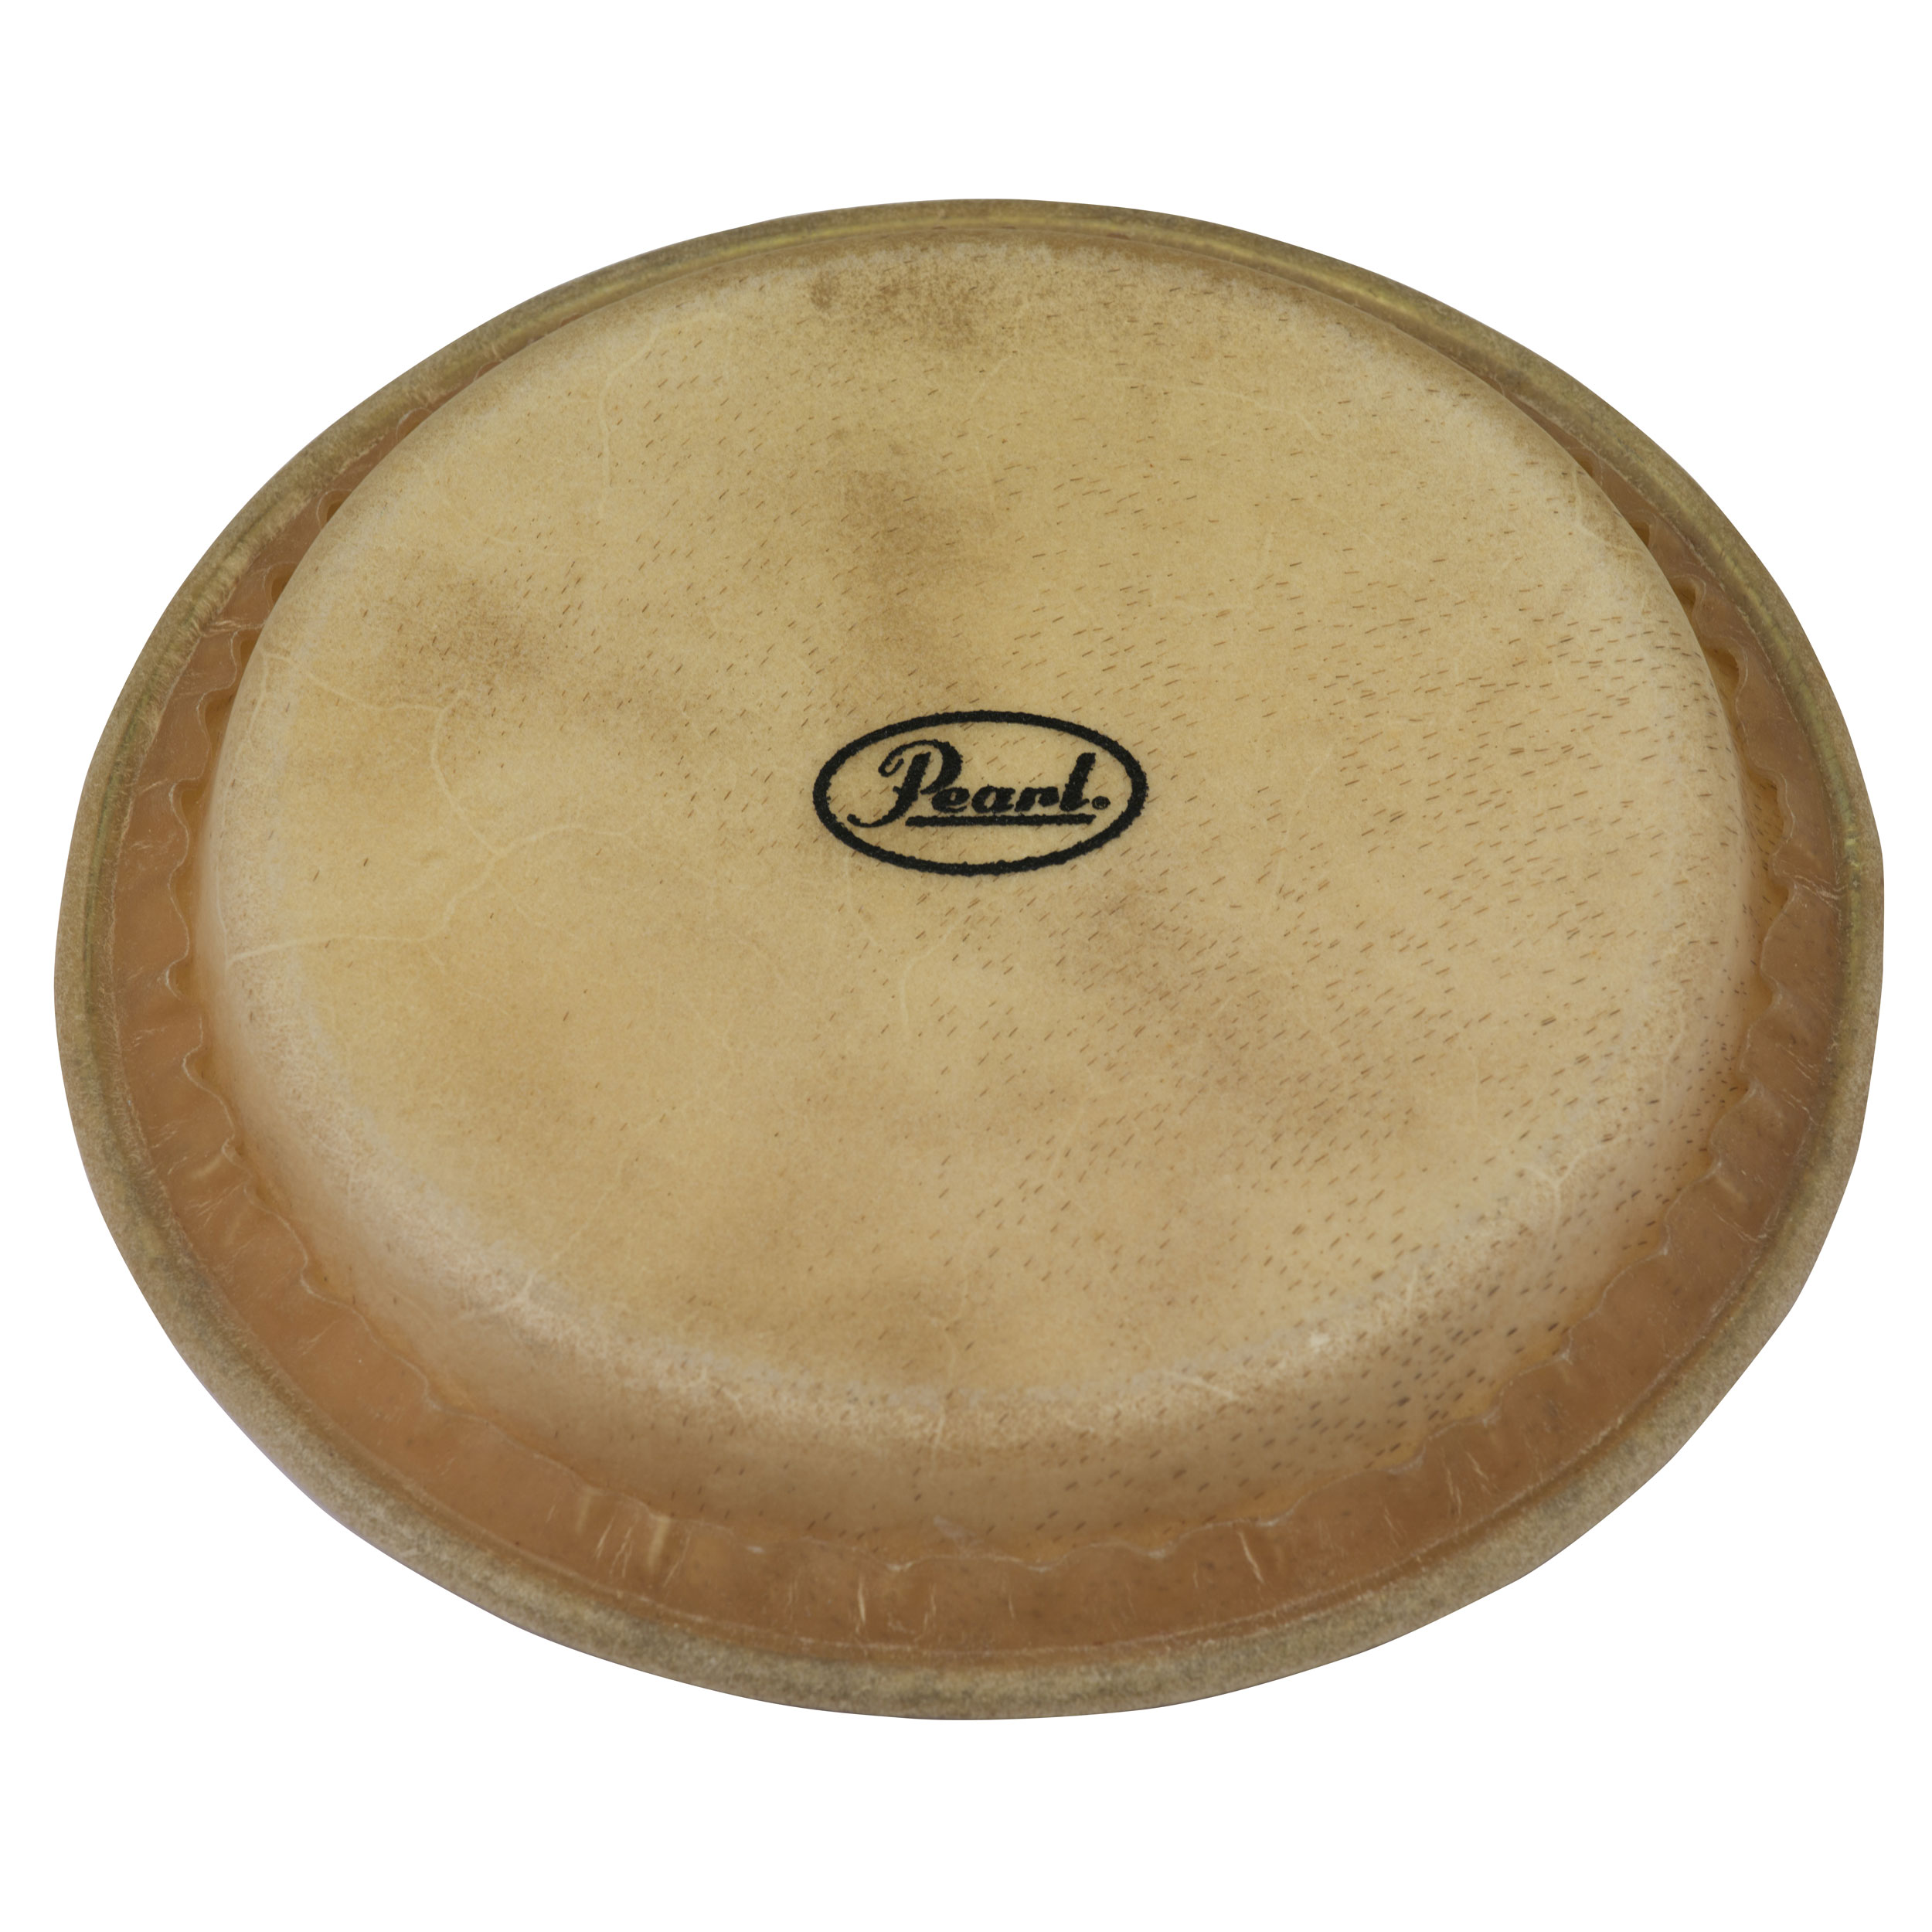 "Pearl 11.75"" Elite Wood Rawhide Conga Drum Head"